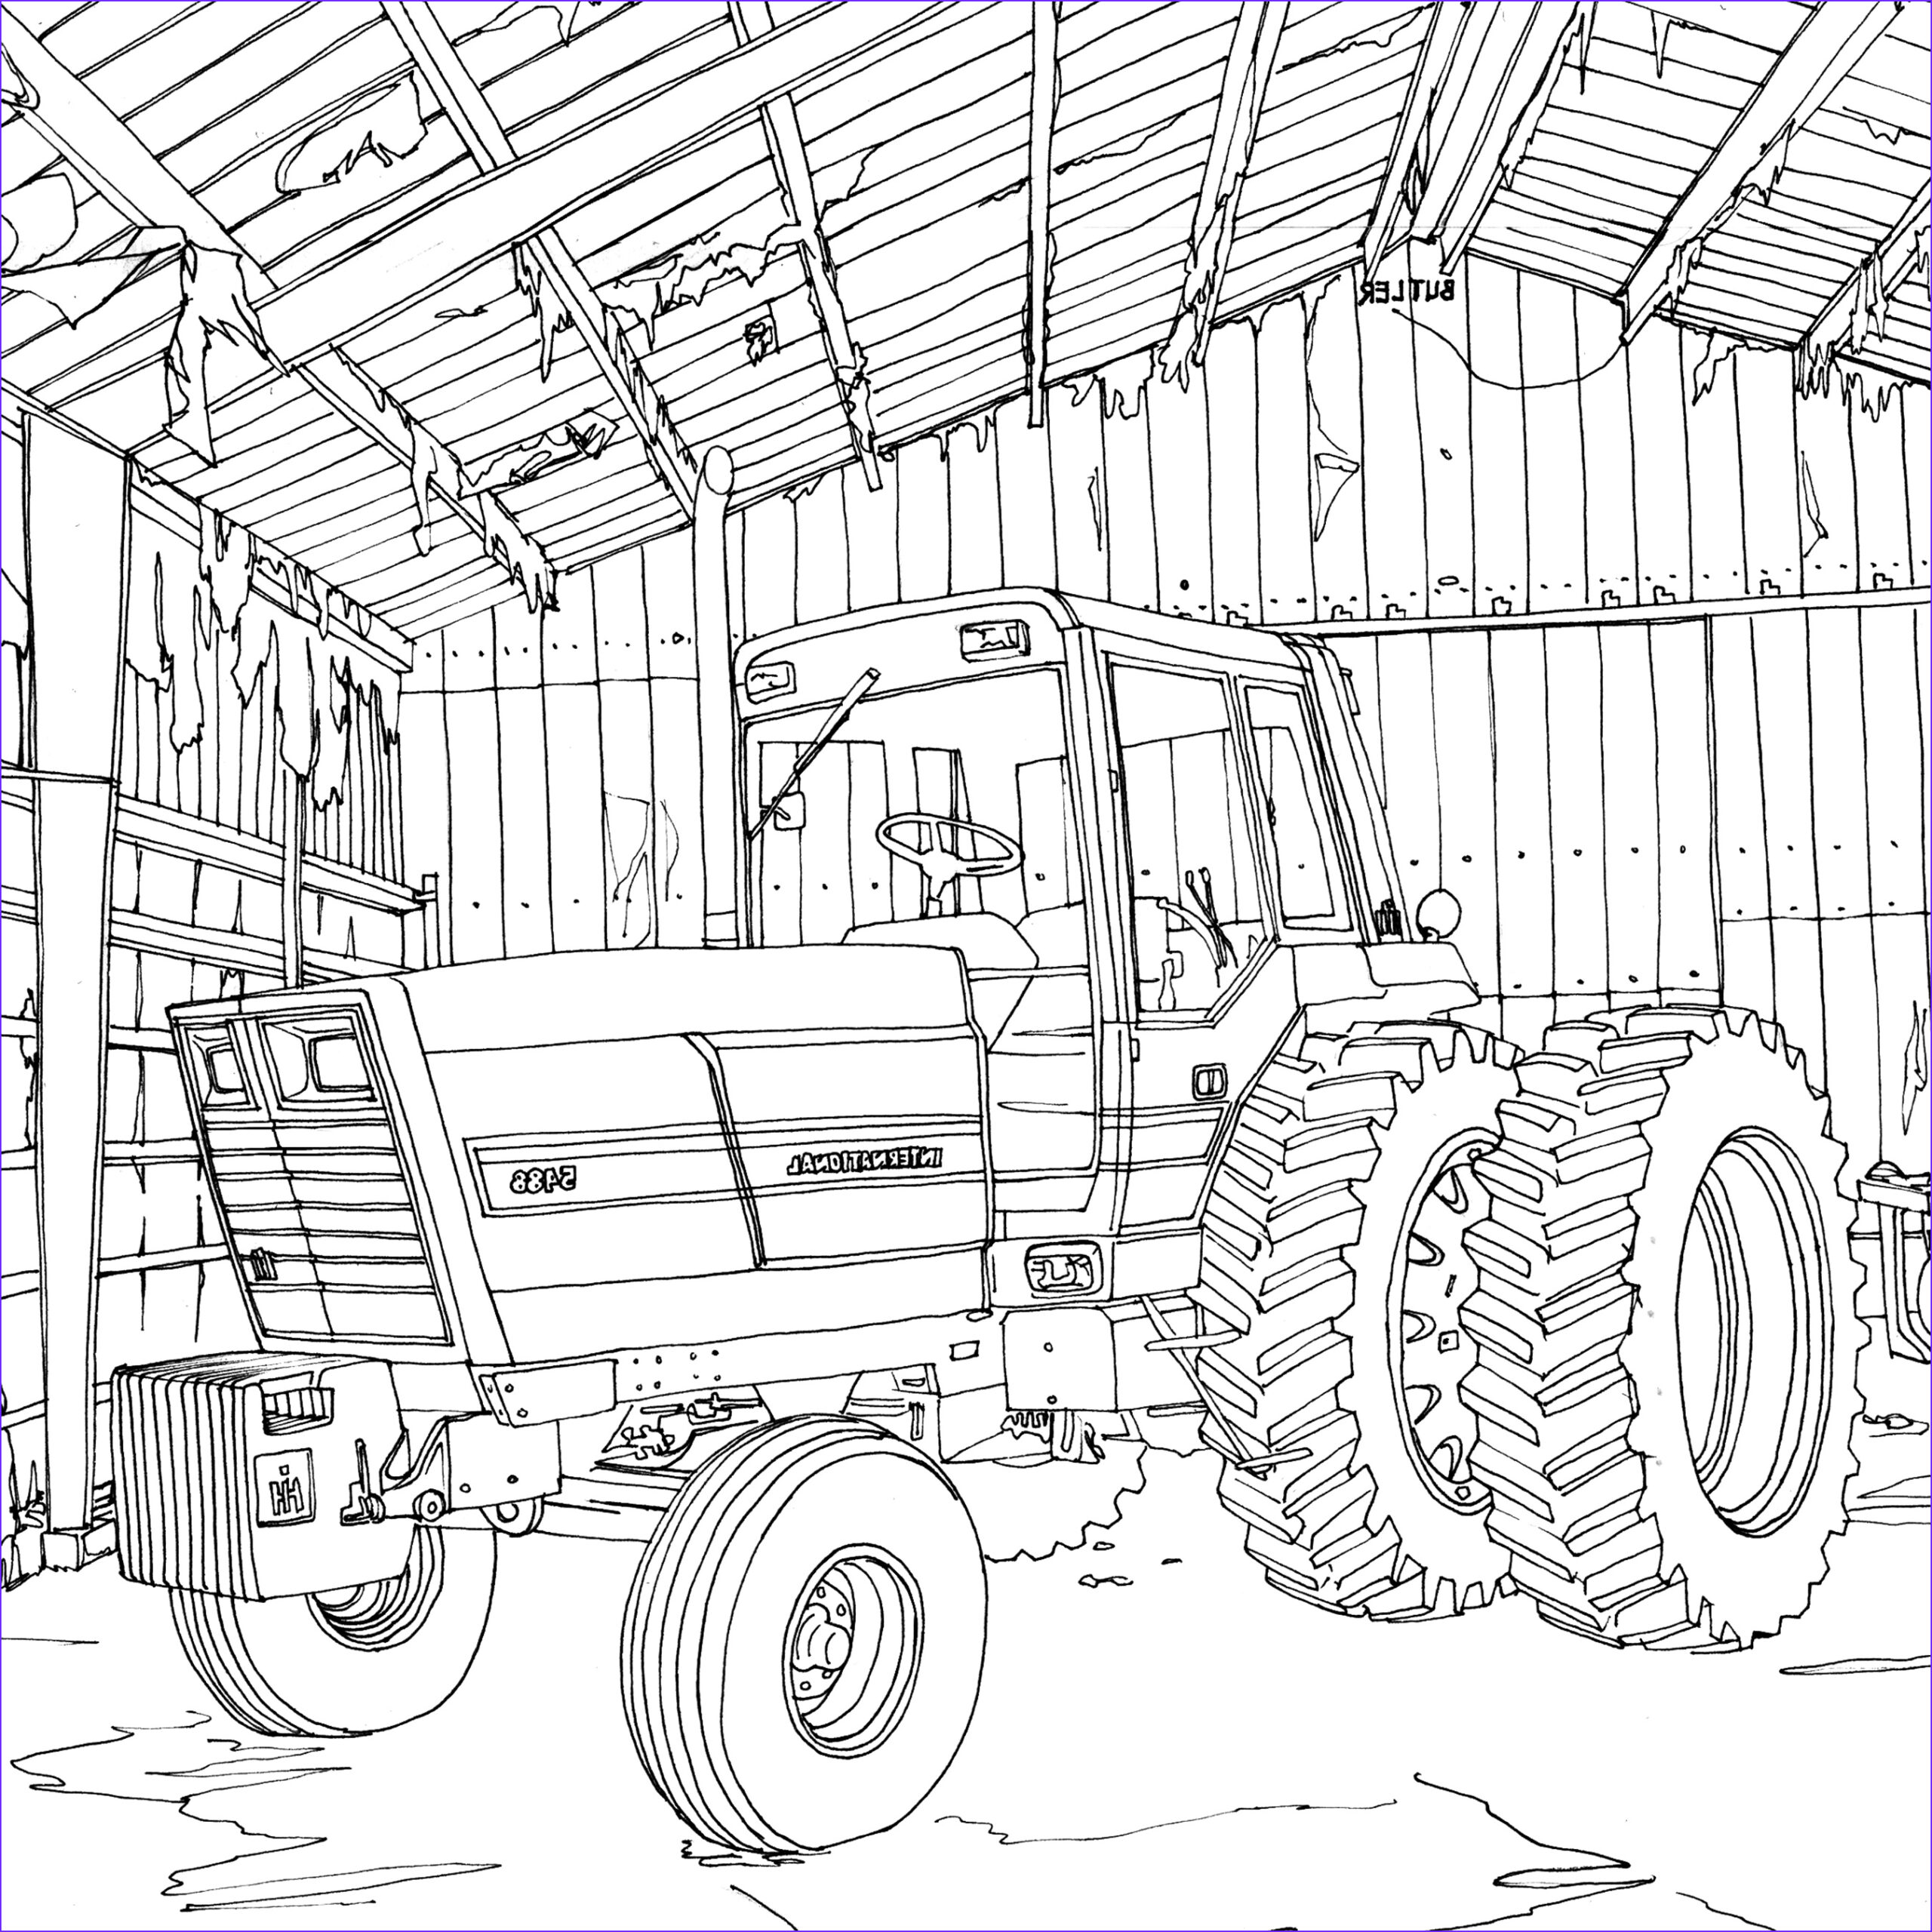 Tractors Coloring Book Best Of Image Art Of the Tractor Coloring Book